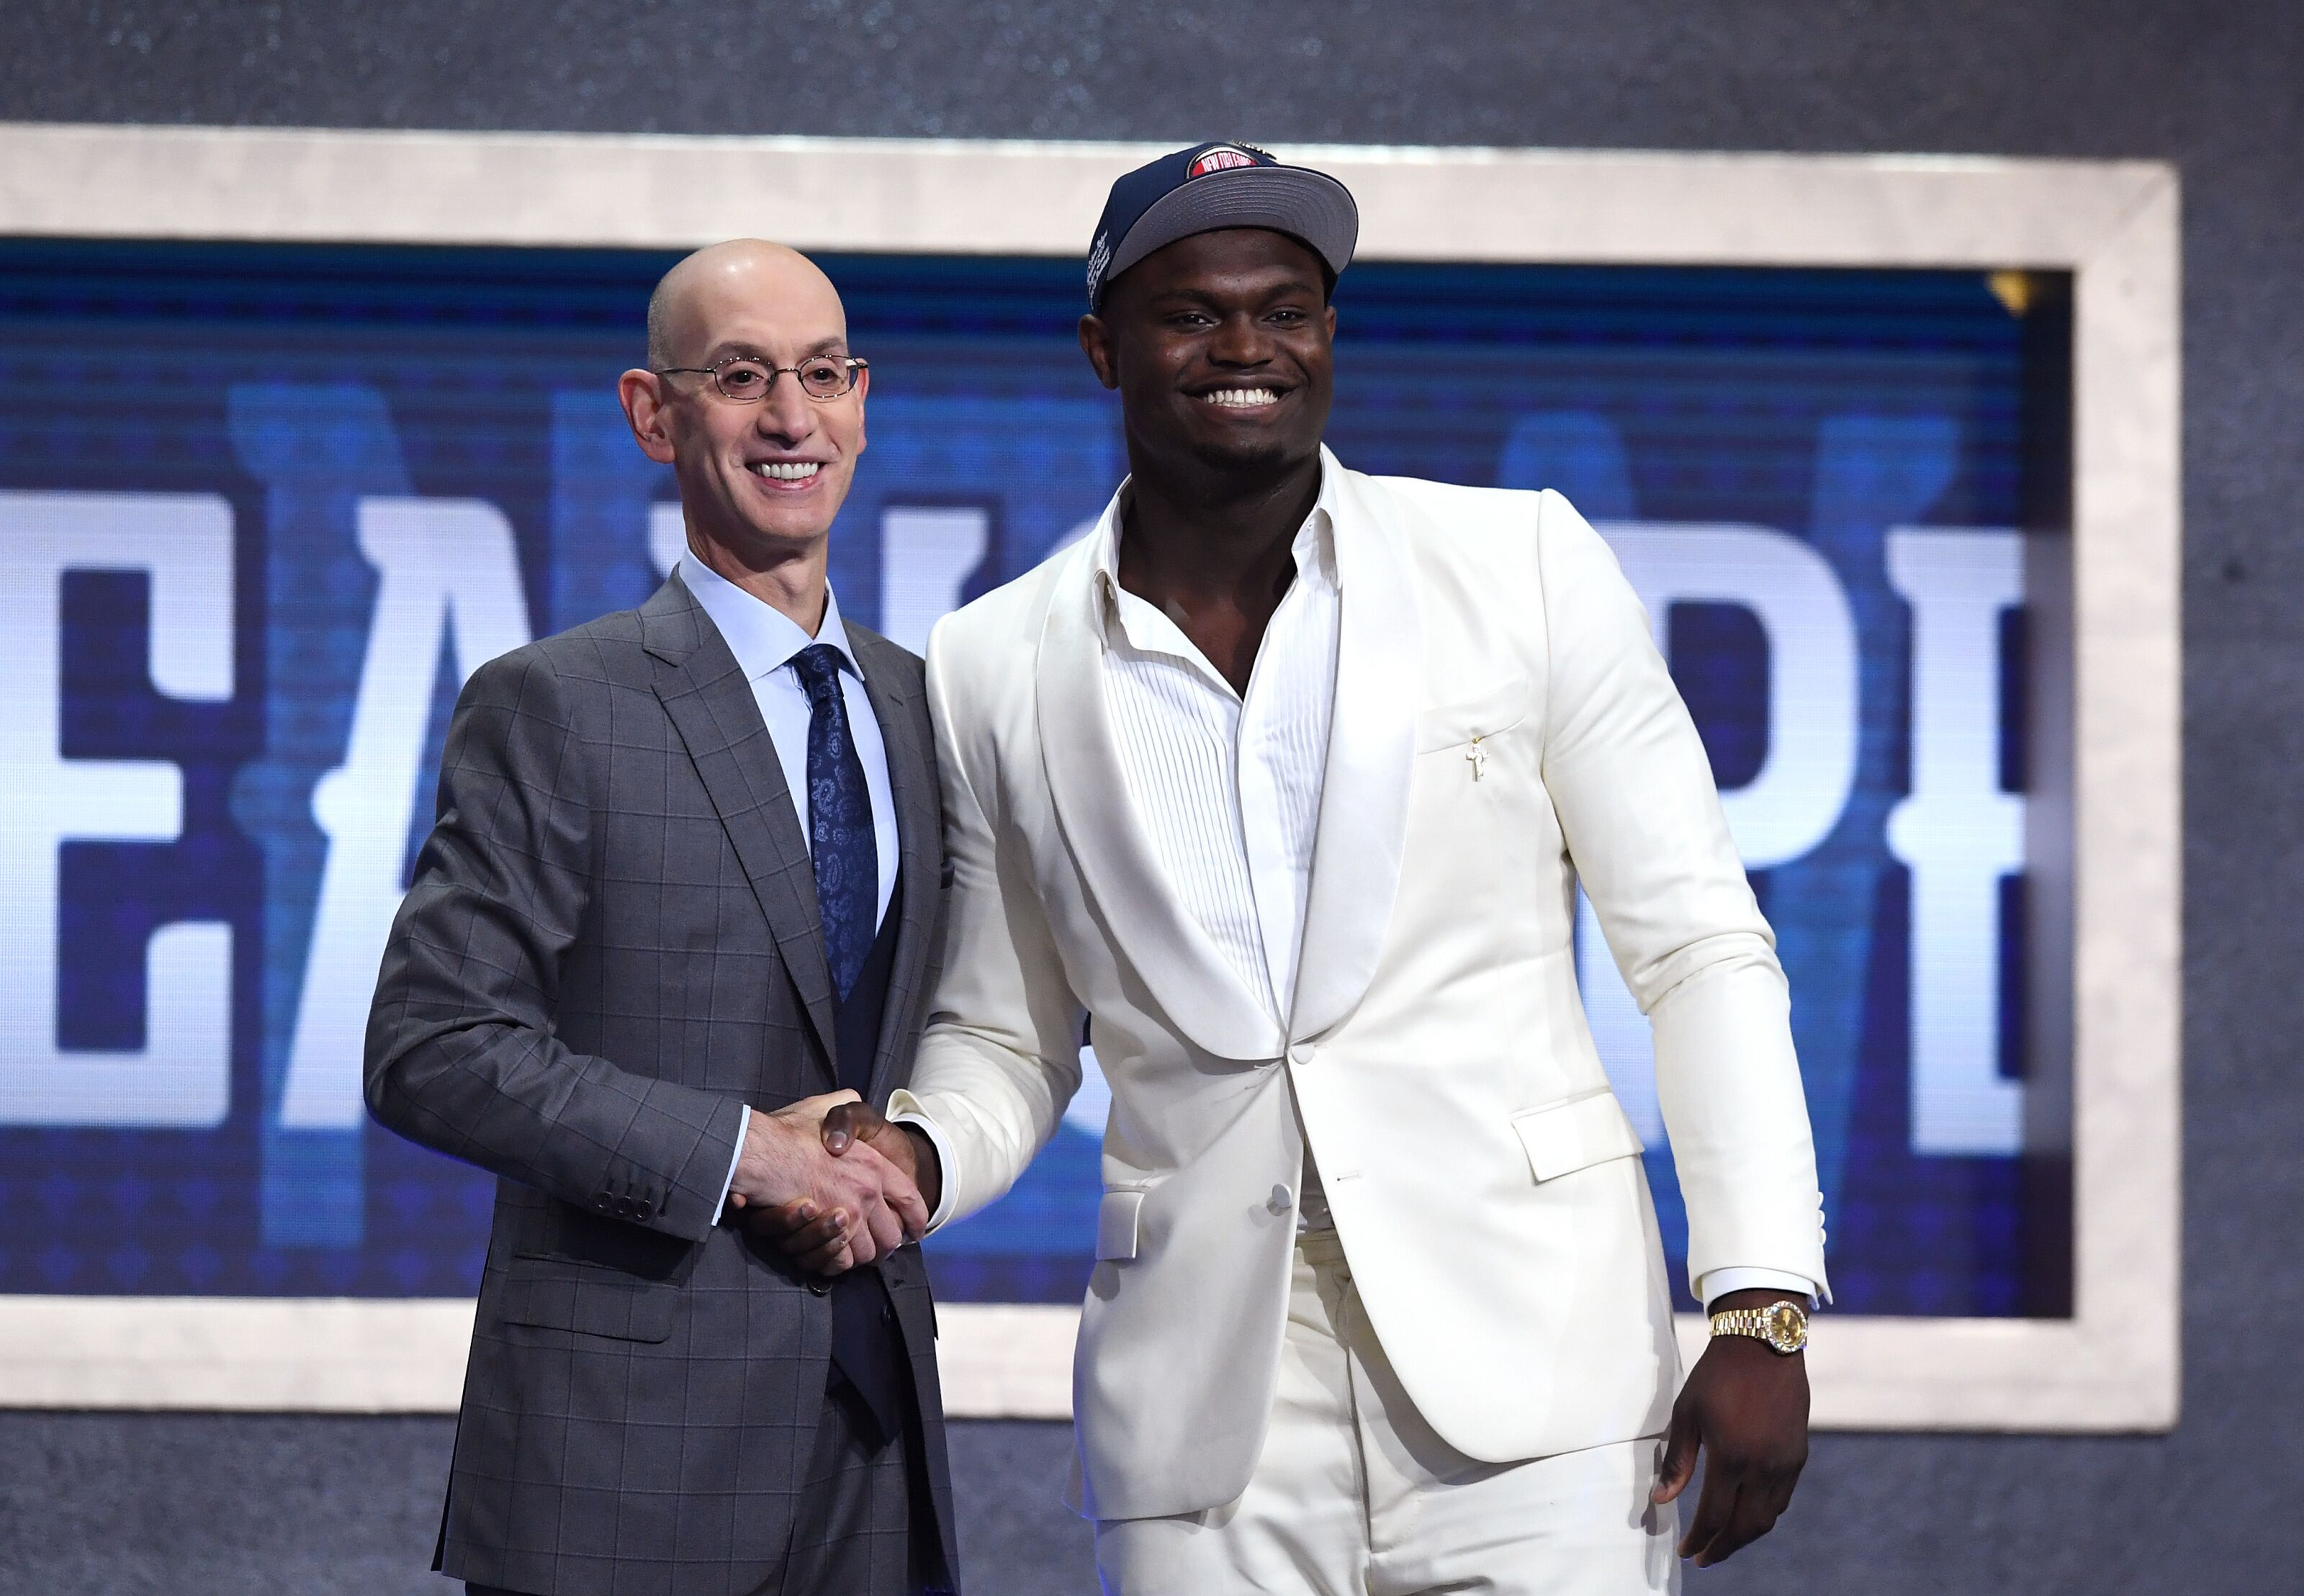 2019 NBA Draft grades for every team: Pelicans get an A+, Rockets an F